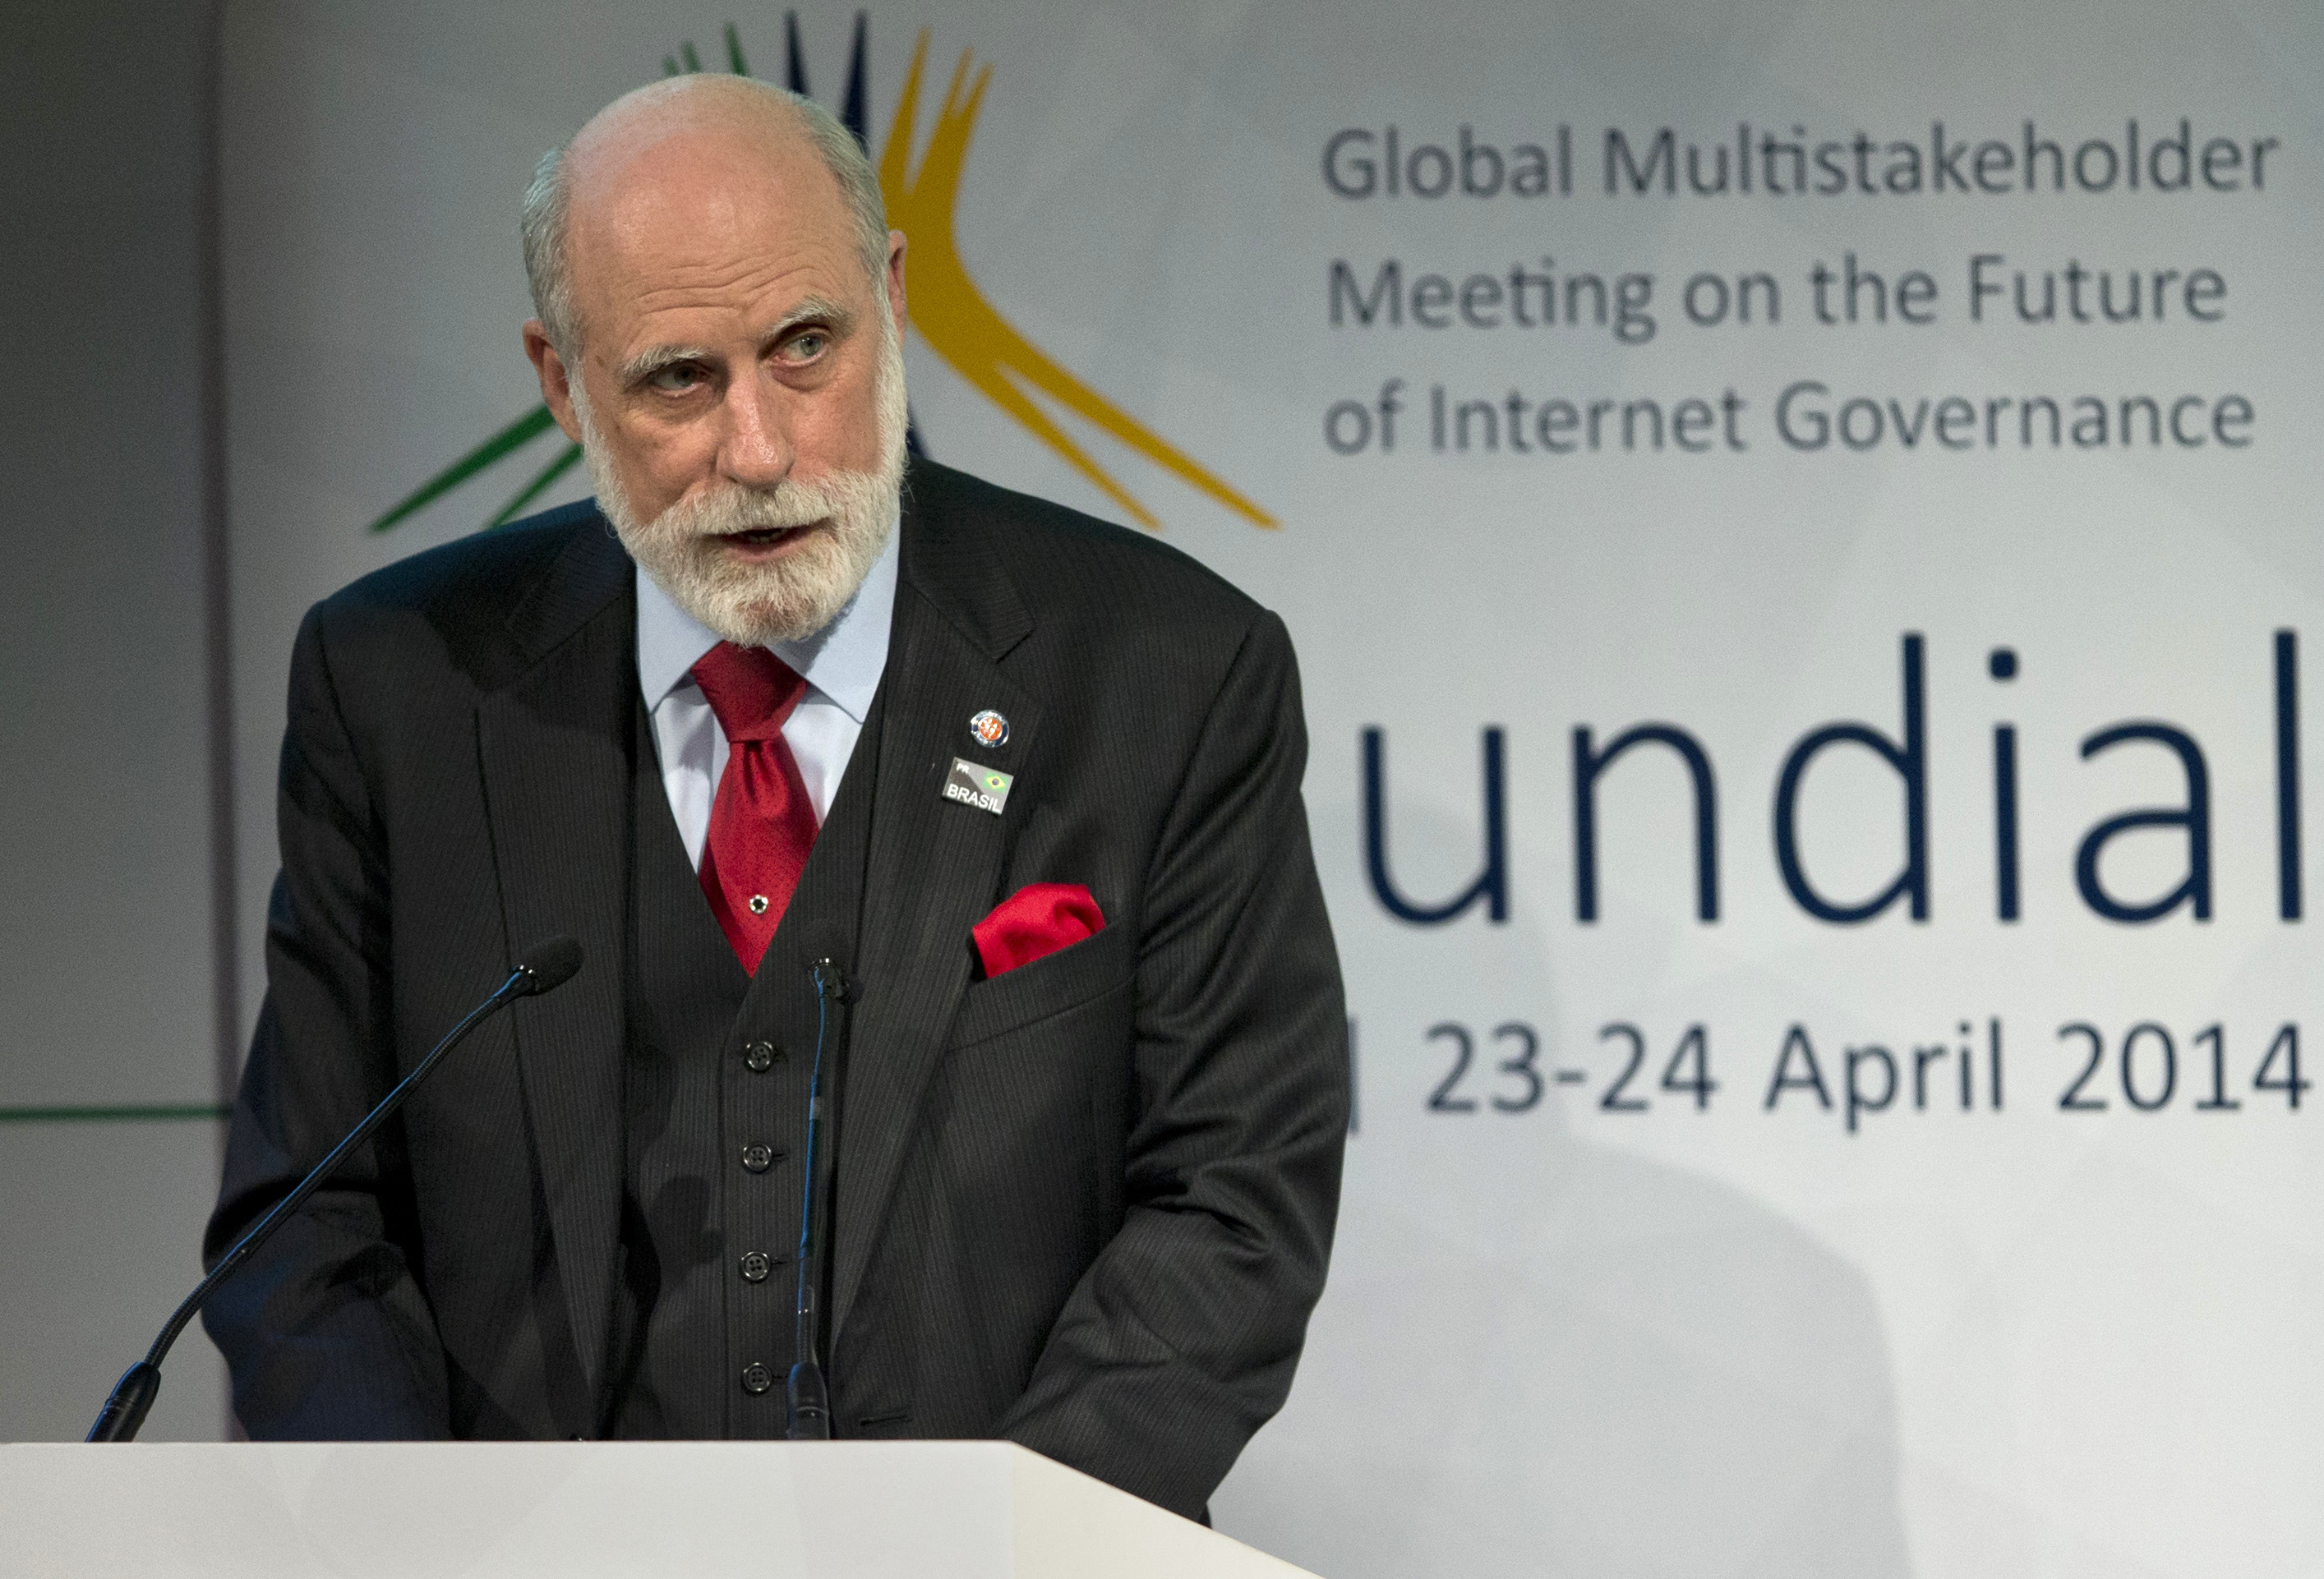 Computer scientist Vint Cerf addresses the opening ceremony of NETmundial, a major conference on the future of Internet governance in Sao Paulo on April 23, 2014.